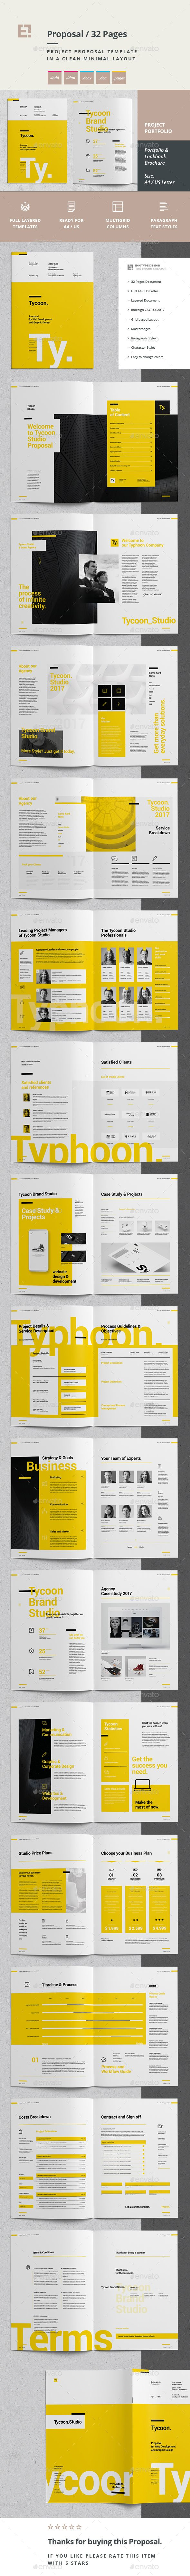 Proposal — InDesign INDD #indesign #professional • Available here ➝ https://graphicriver.net/item/proposal/21017467?ref=pxcr